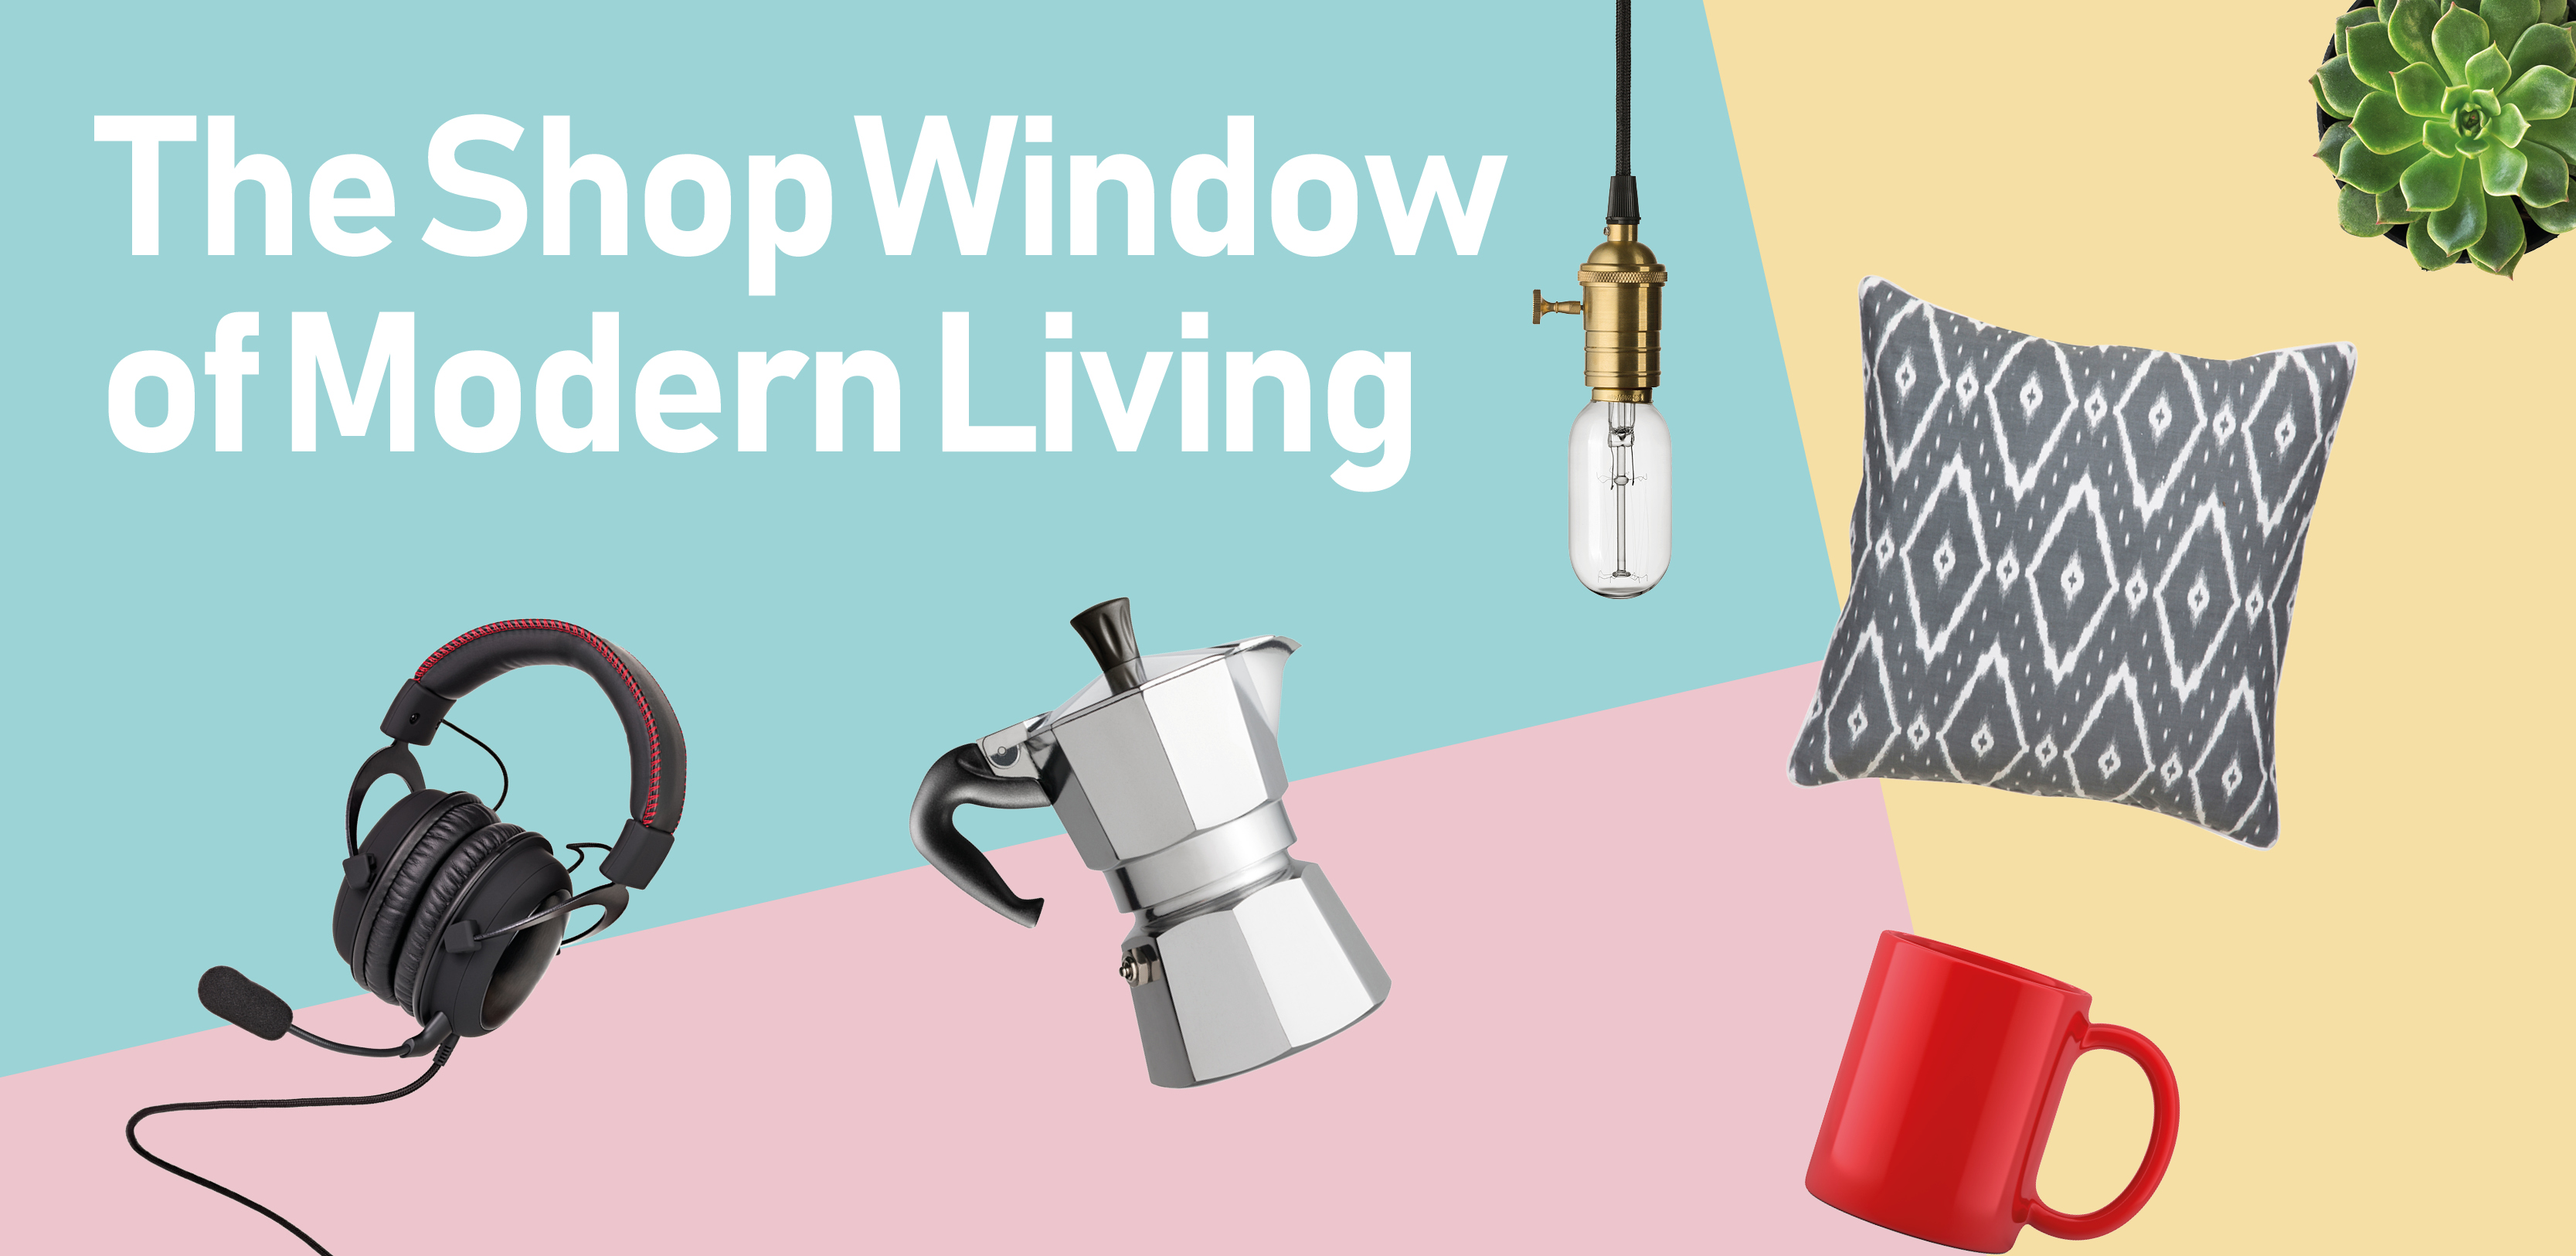 The Shop Window of Modern Living